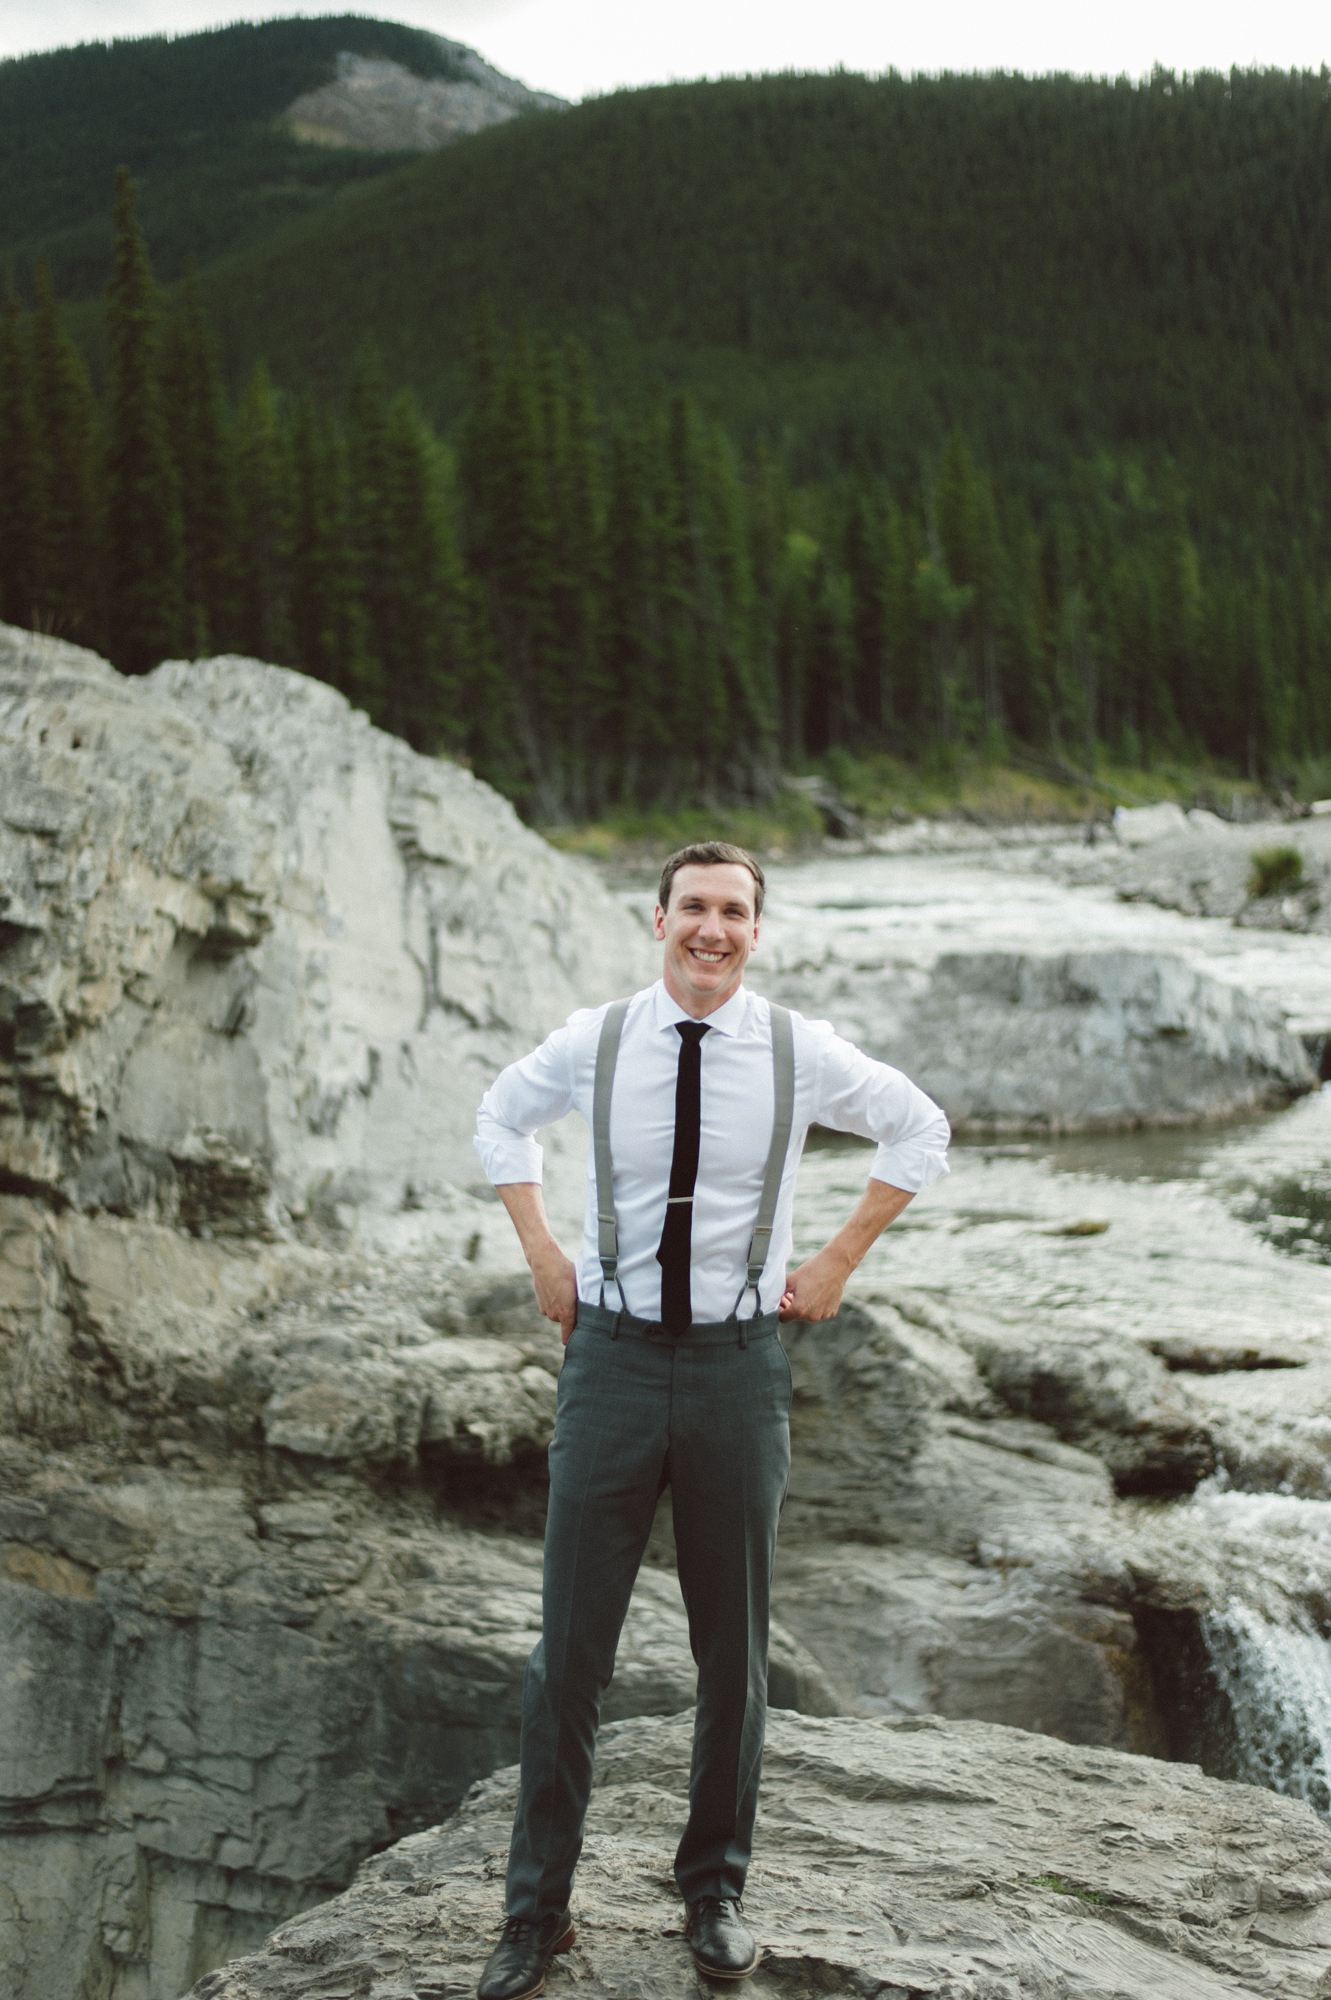 Rocky Mountain Banff Calgary Alberta Wedding-Jessika Hunter Photo-96.JPG